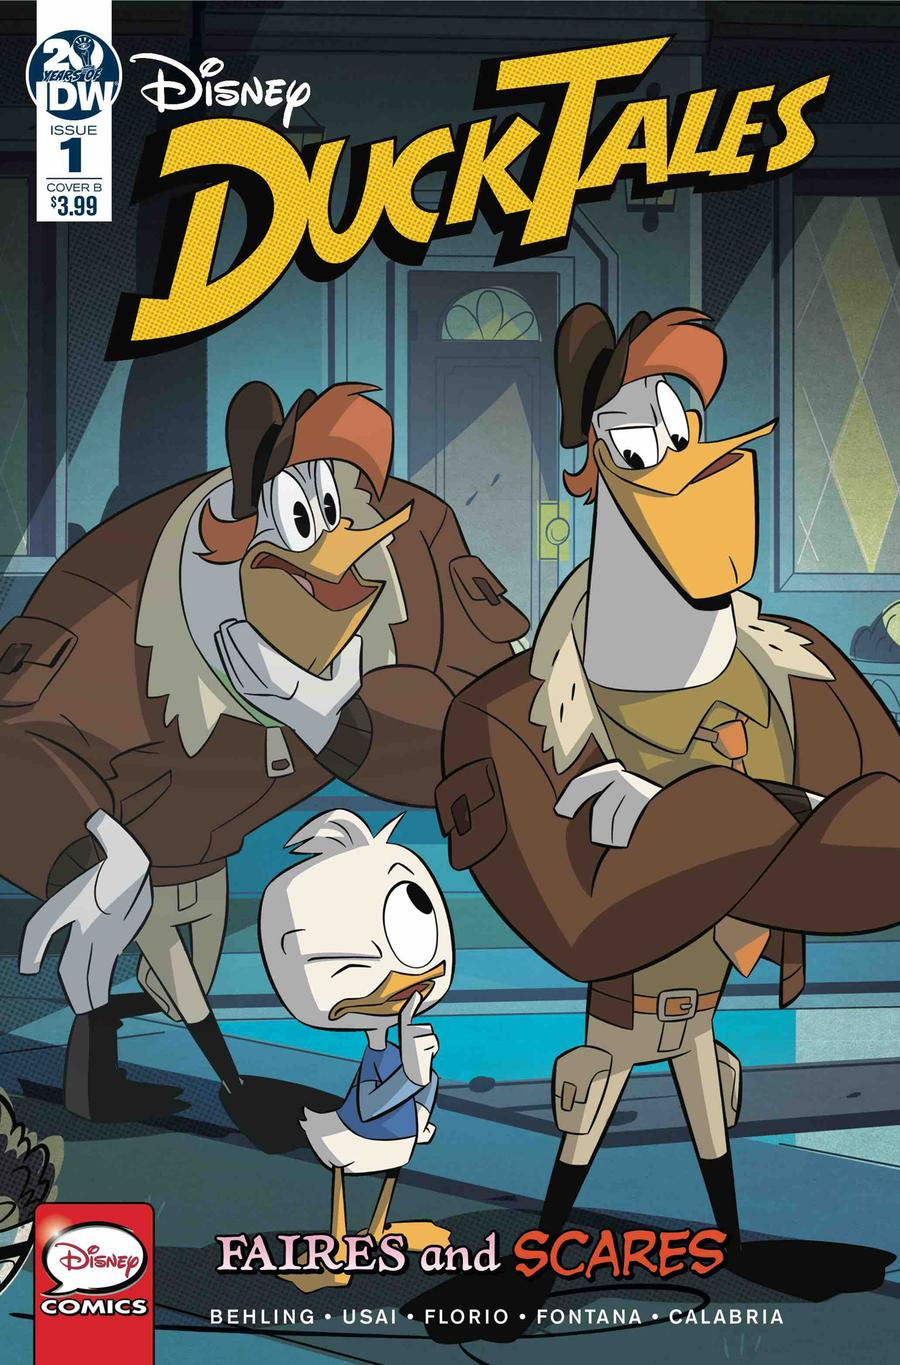 Ducktales Faires And Scares #1 Cover B Variant Marco Ghiglione & Cristina Stella Cover